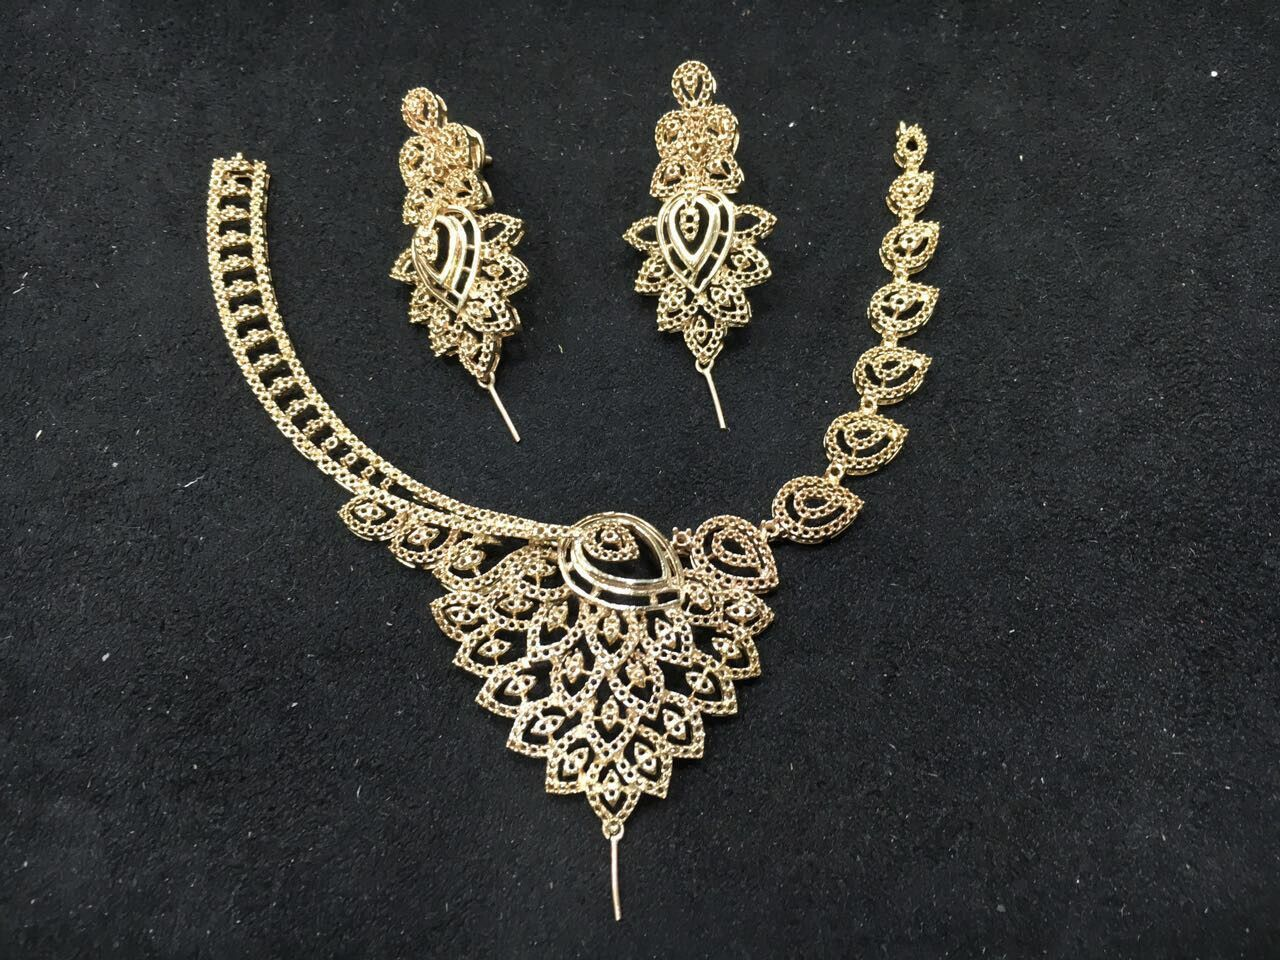 Pin by Dhaval shah on Neckless Fashion rings, Necklace